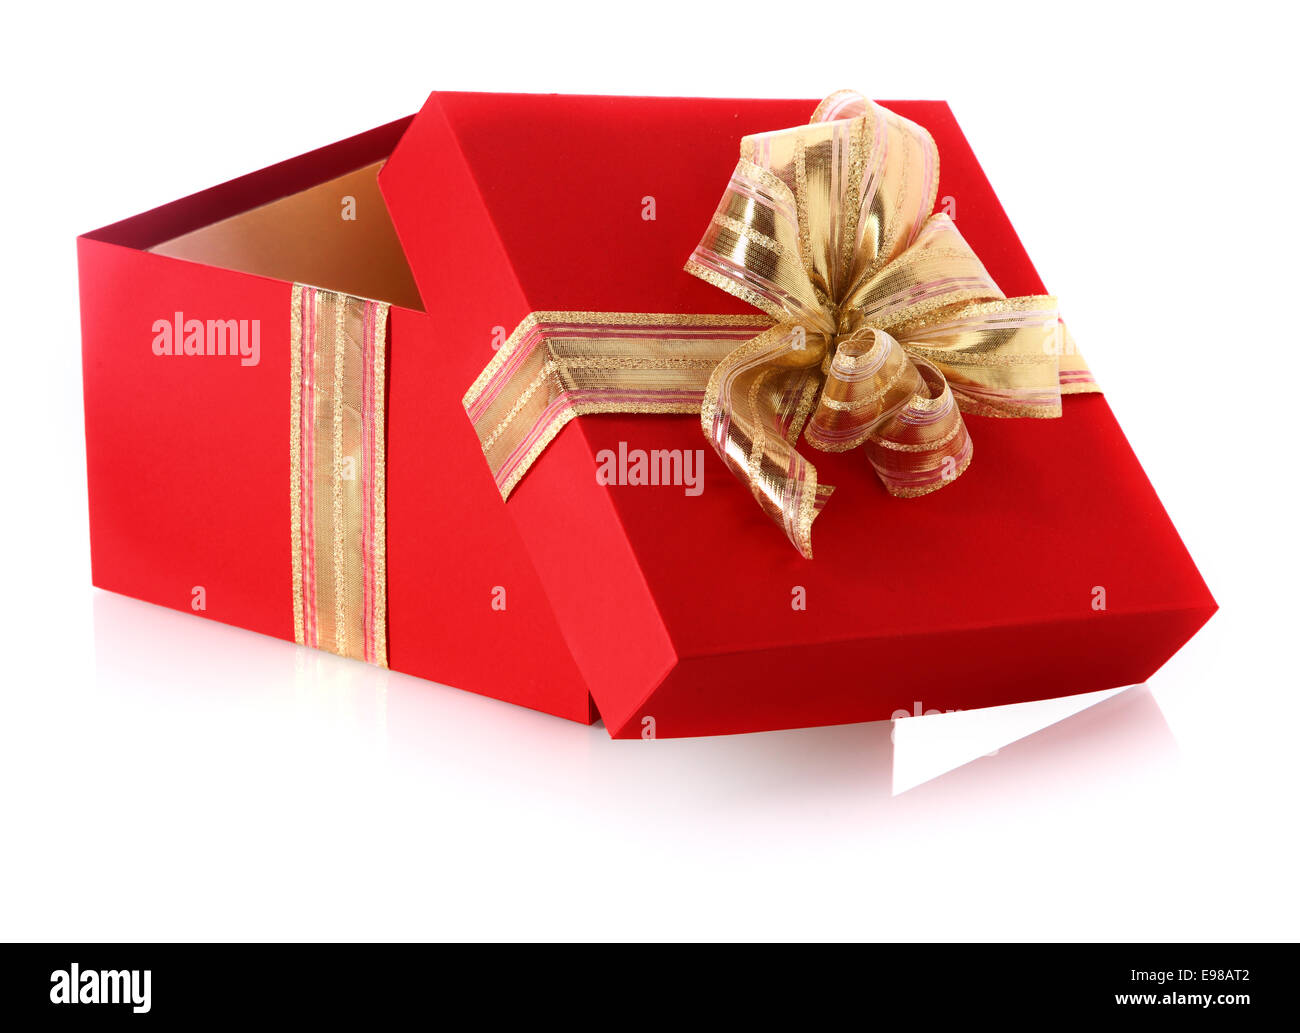 Festive Red Gift Box With An Open Lid And Golden Bow For Celebrating